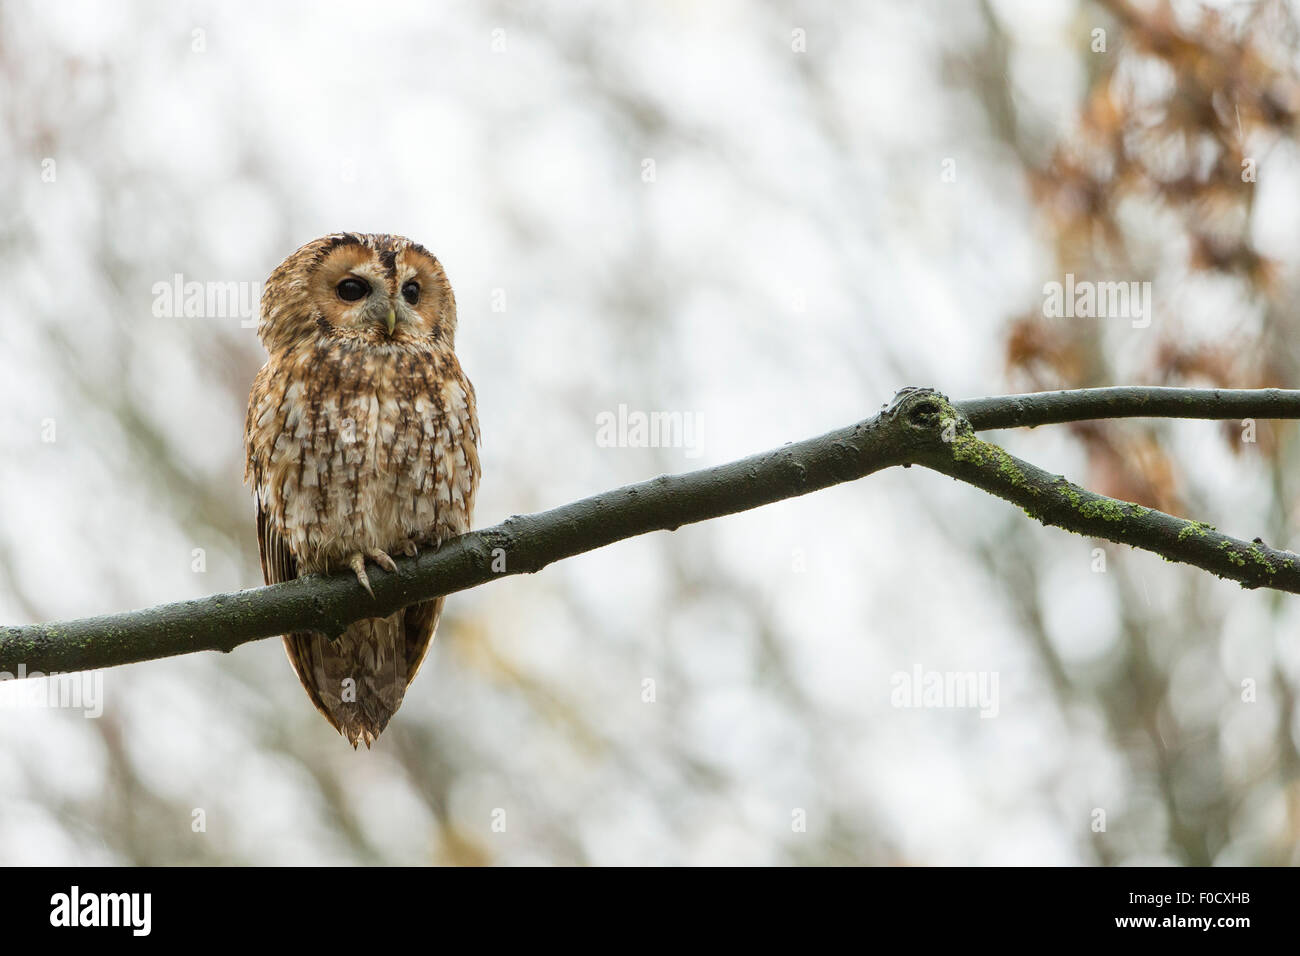 Tawny owl Strix aluco (captive), adult male, perched on branch in woodland, Hawk Conservancy Trust, Hampshire, UK - Stock Image